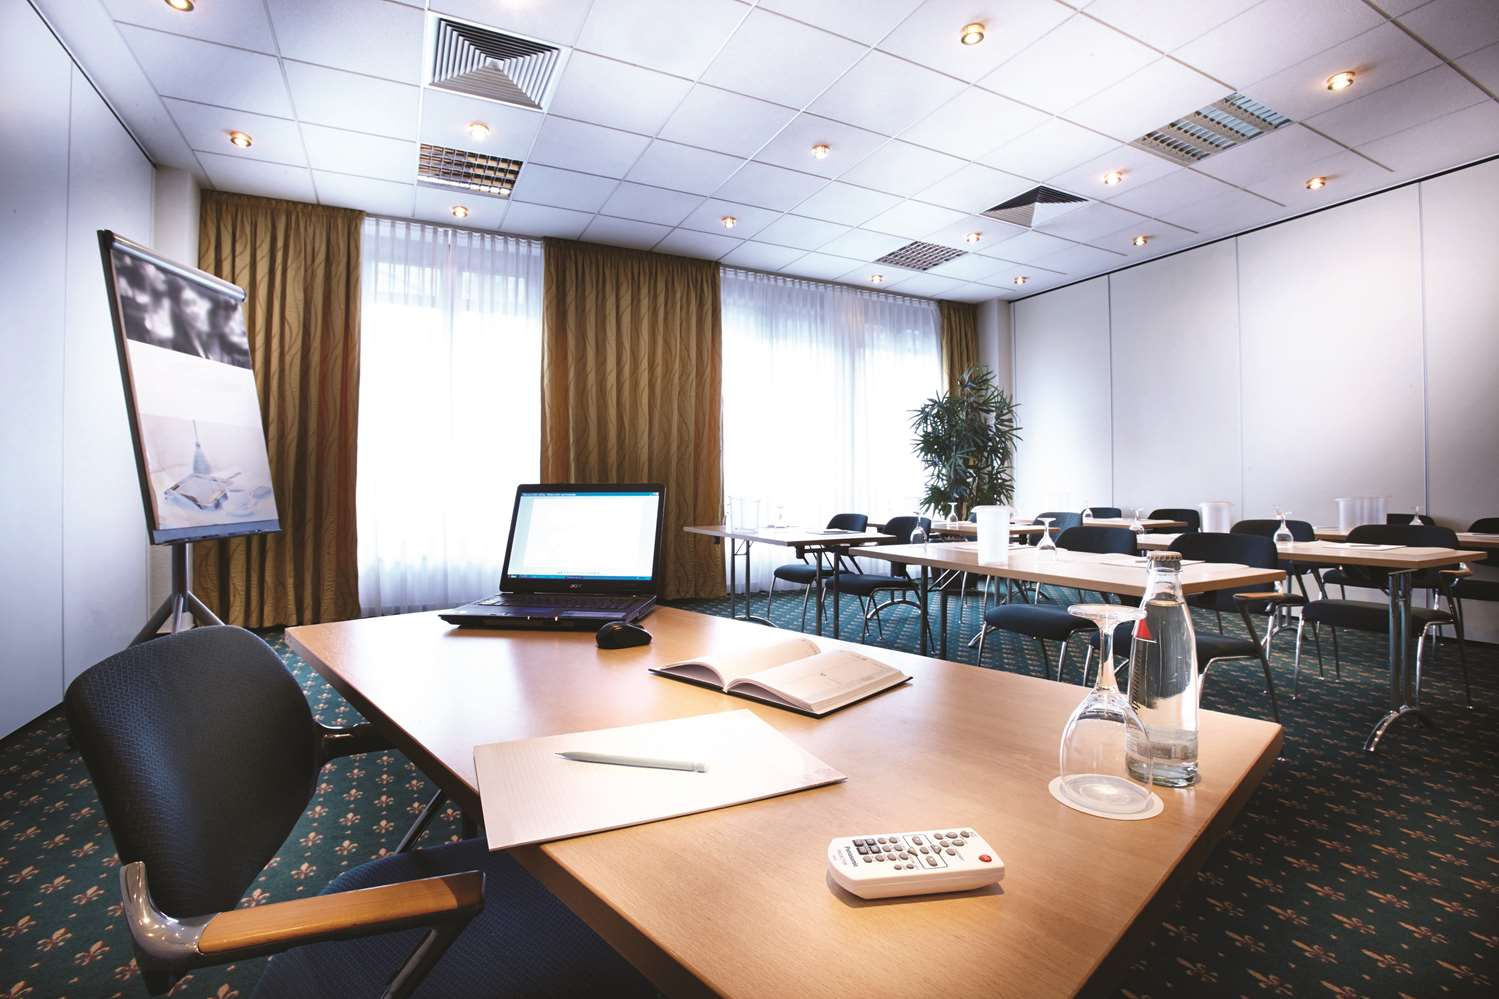 Meetings or festivites for up to 180 people